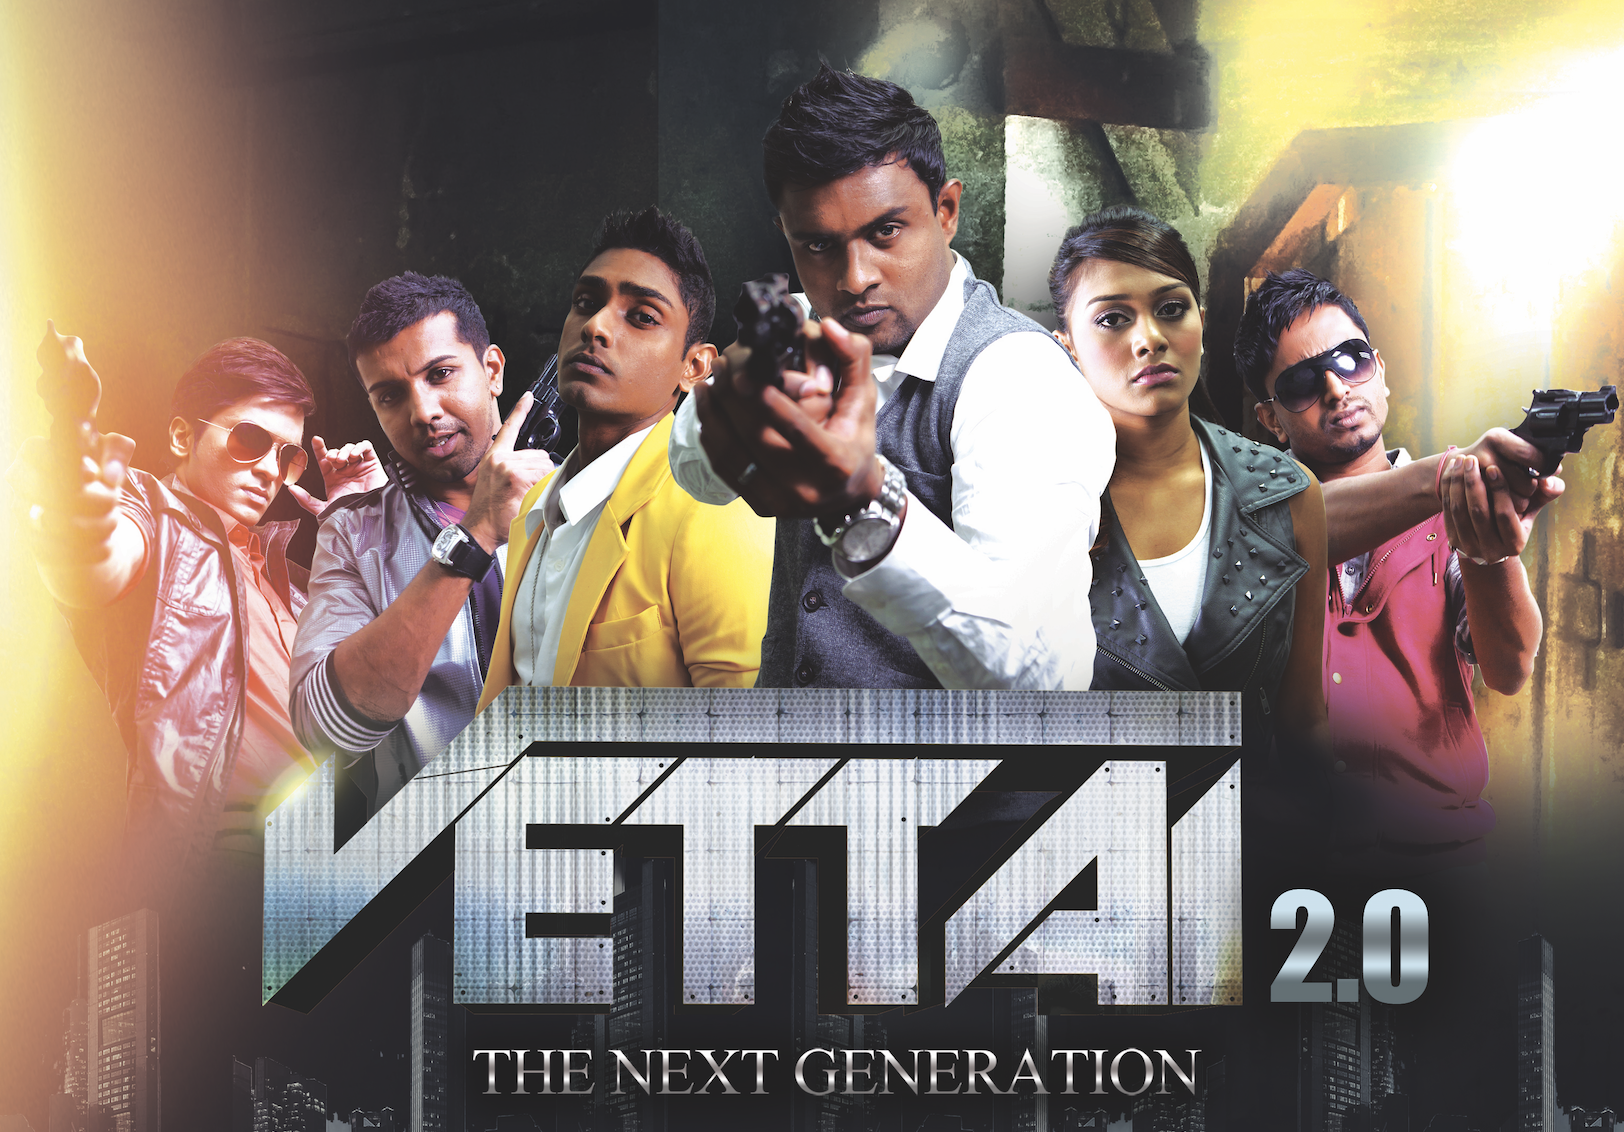 Vettai. Photo courtesy: Mediacorp